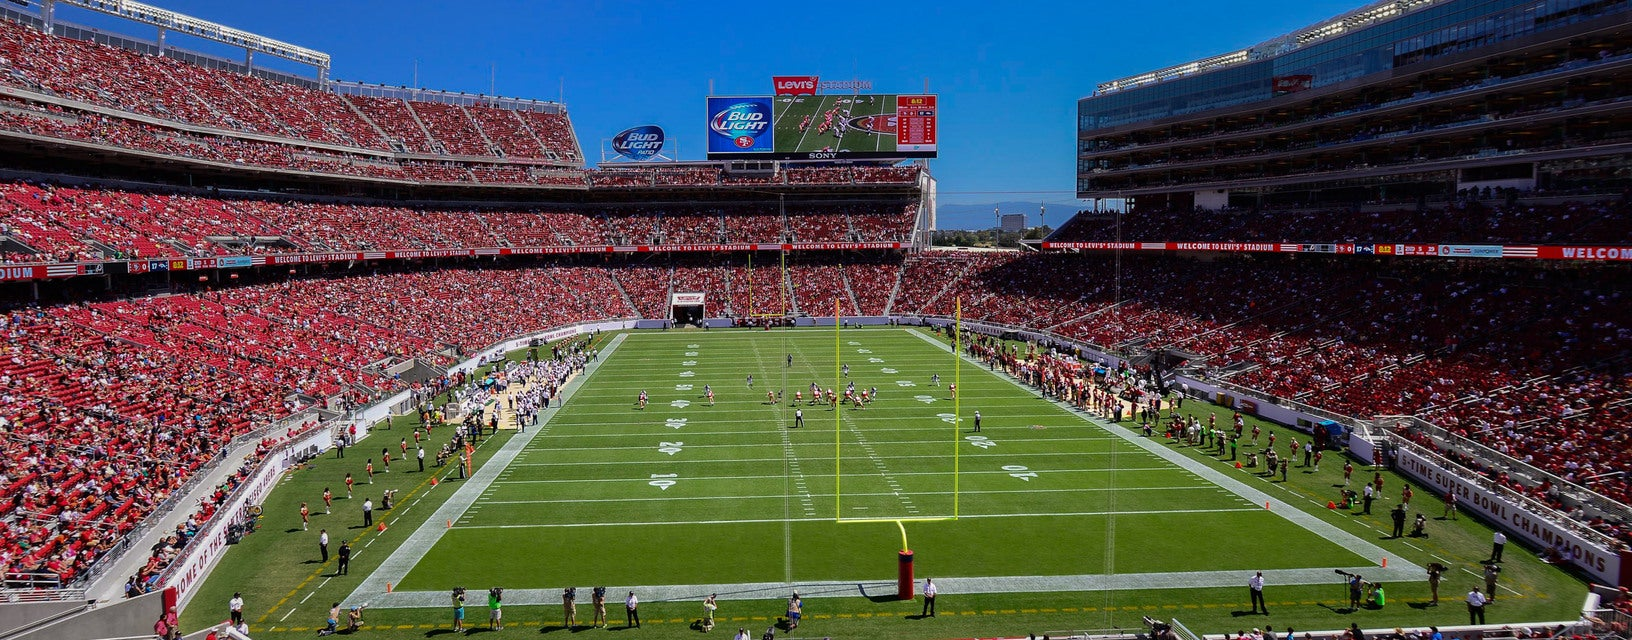 Seat view from Middle Endzone